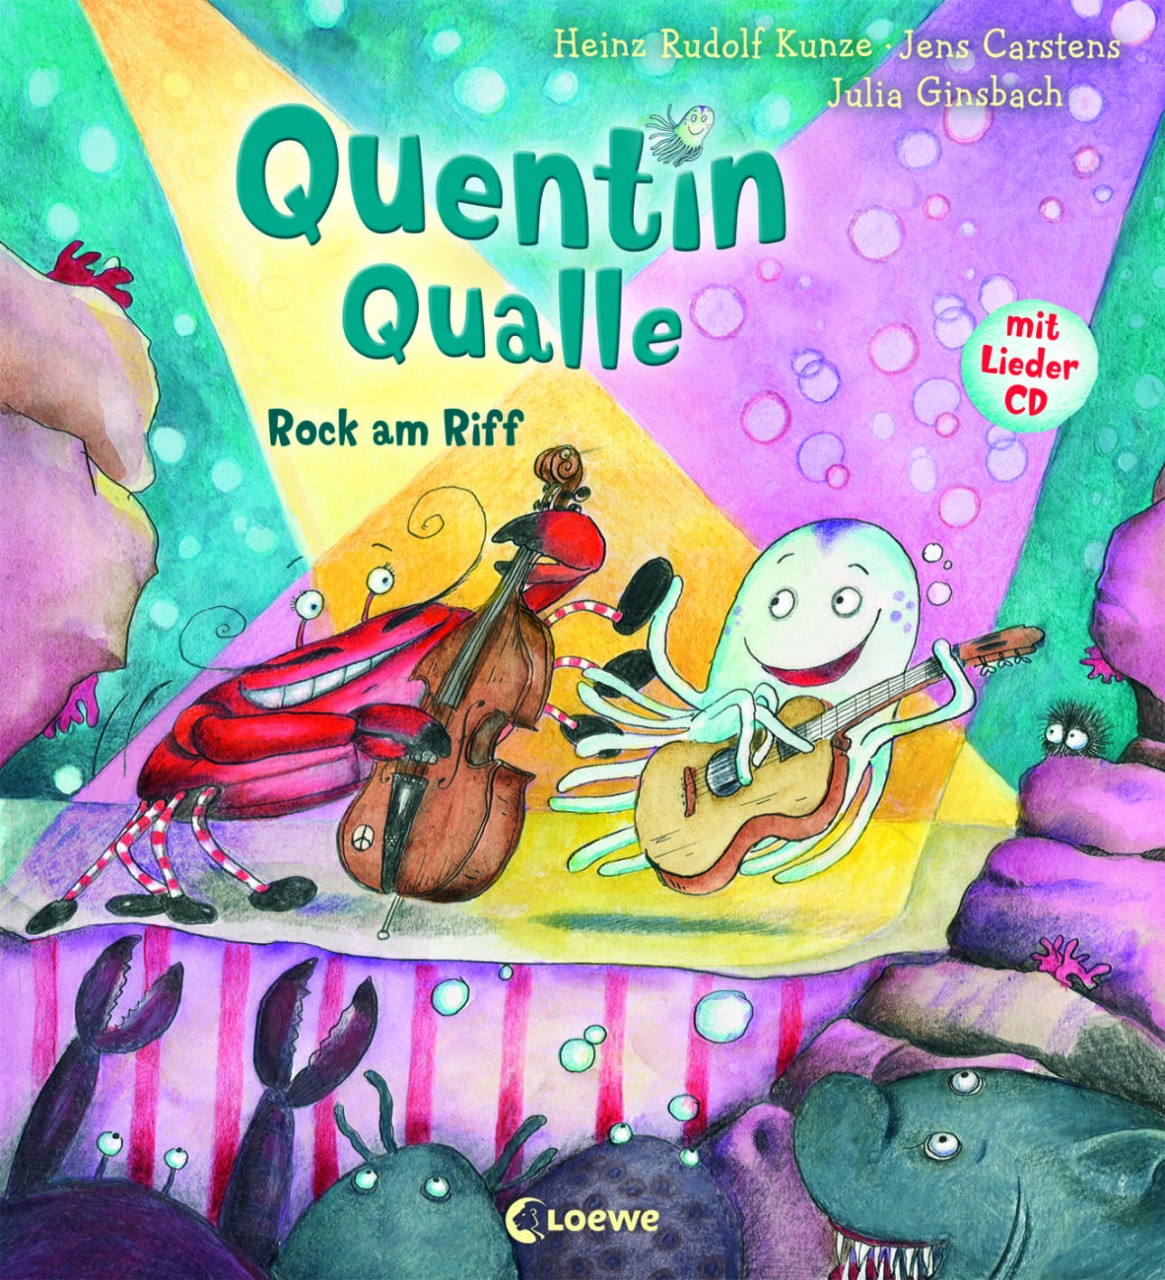 Quentin Qualle, Rock am Riff